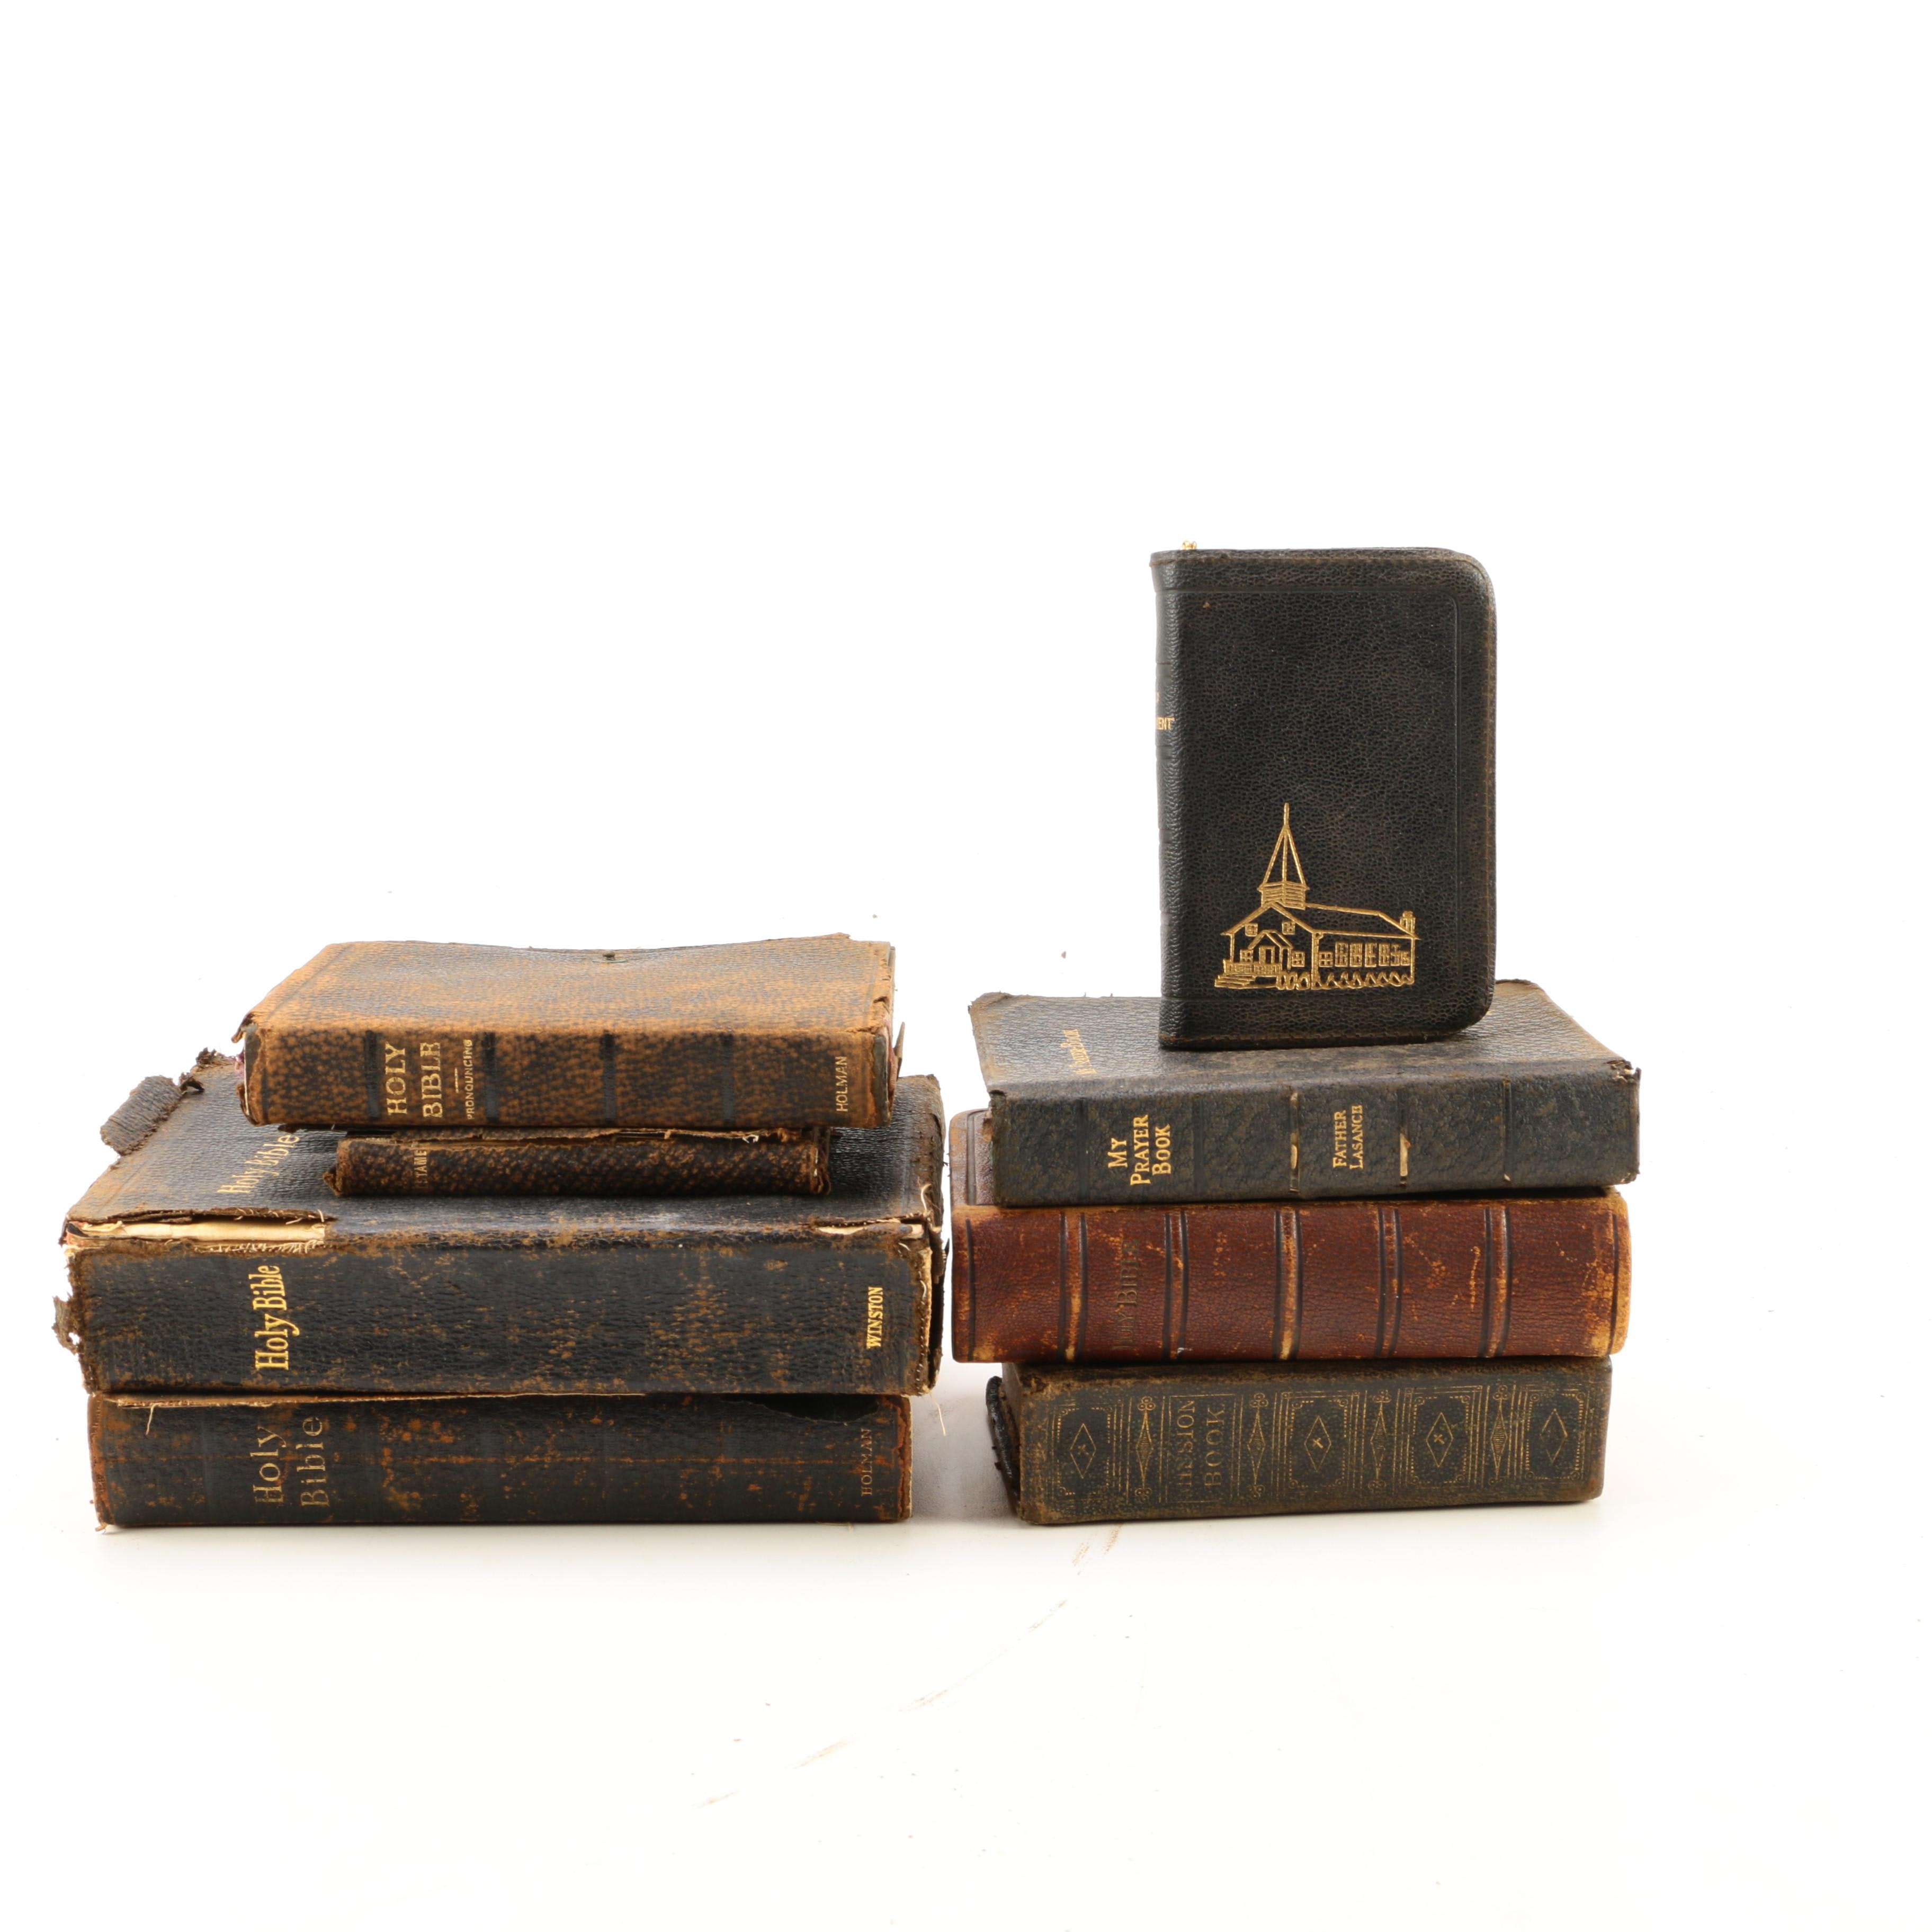 Vintage Christian Books and Bibles